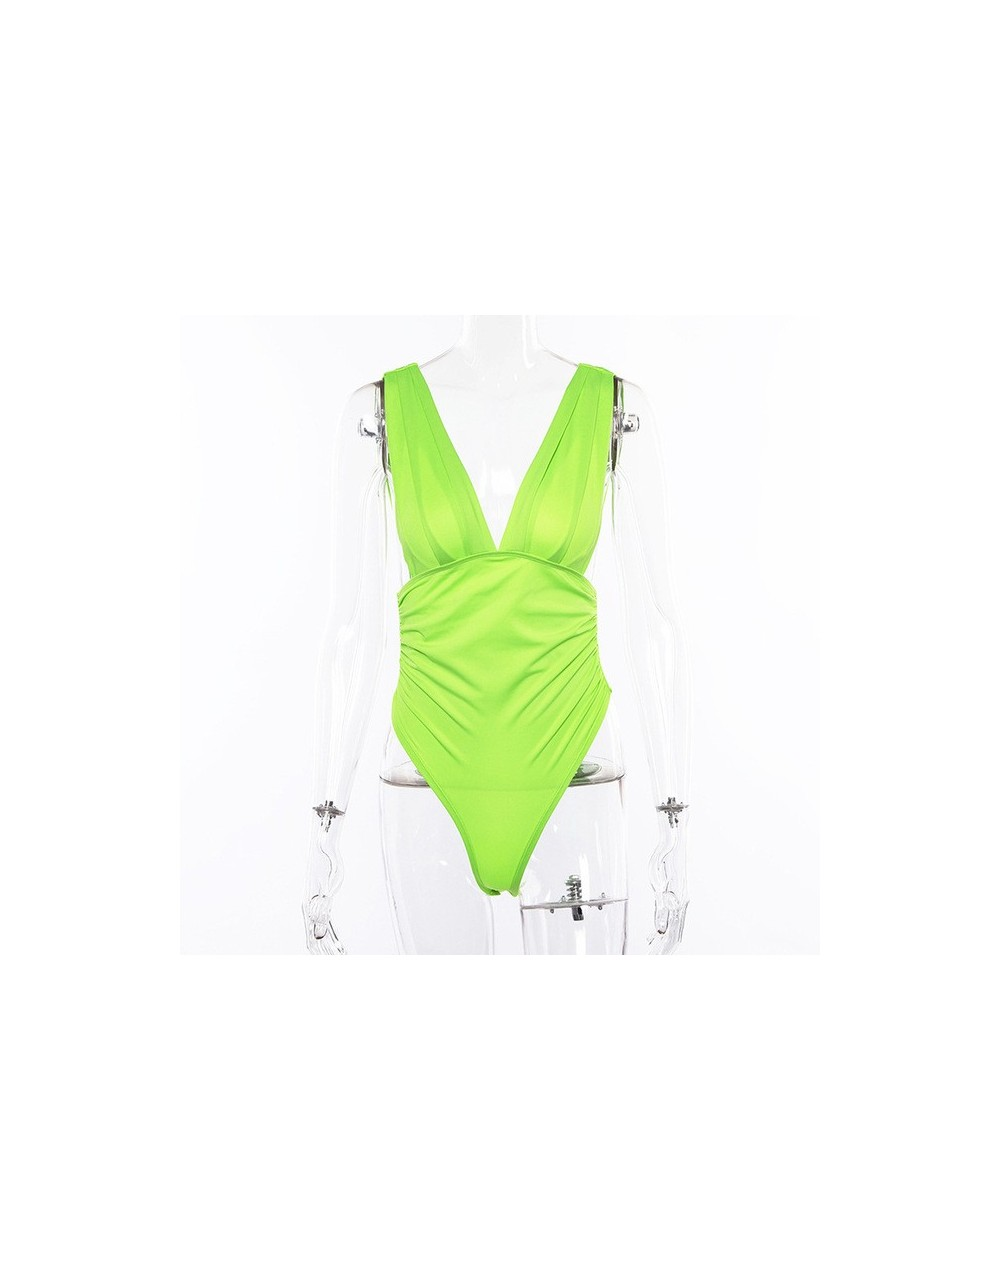 V-neck backless sexy neon bodysuit solid 2019 winter spring Christmas party women fashion casual sleeveless body - Green - 4...